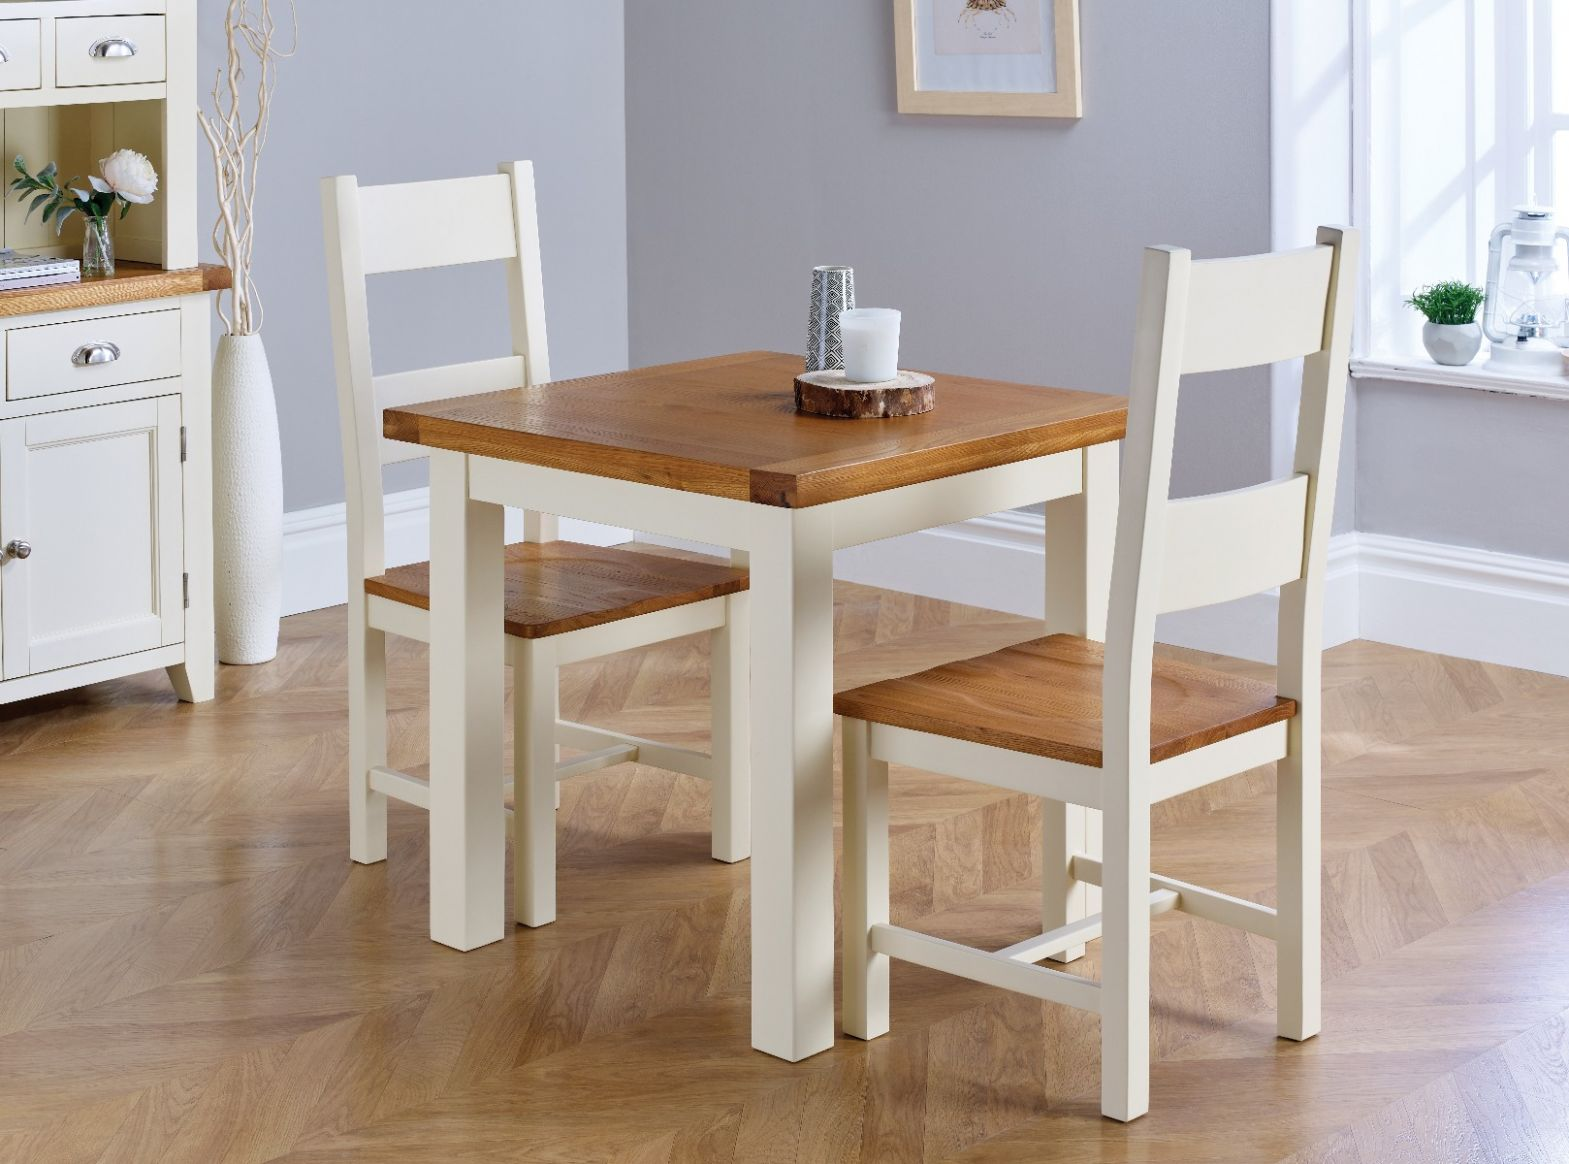 Country Oak Small 12cm Cream Painted Square Oak Dining Table / Desk -  SPRING SALE - kitchen dining room ideas uk